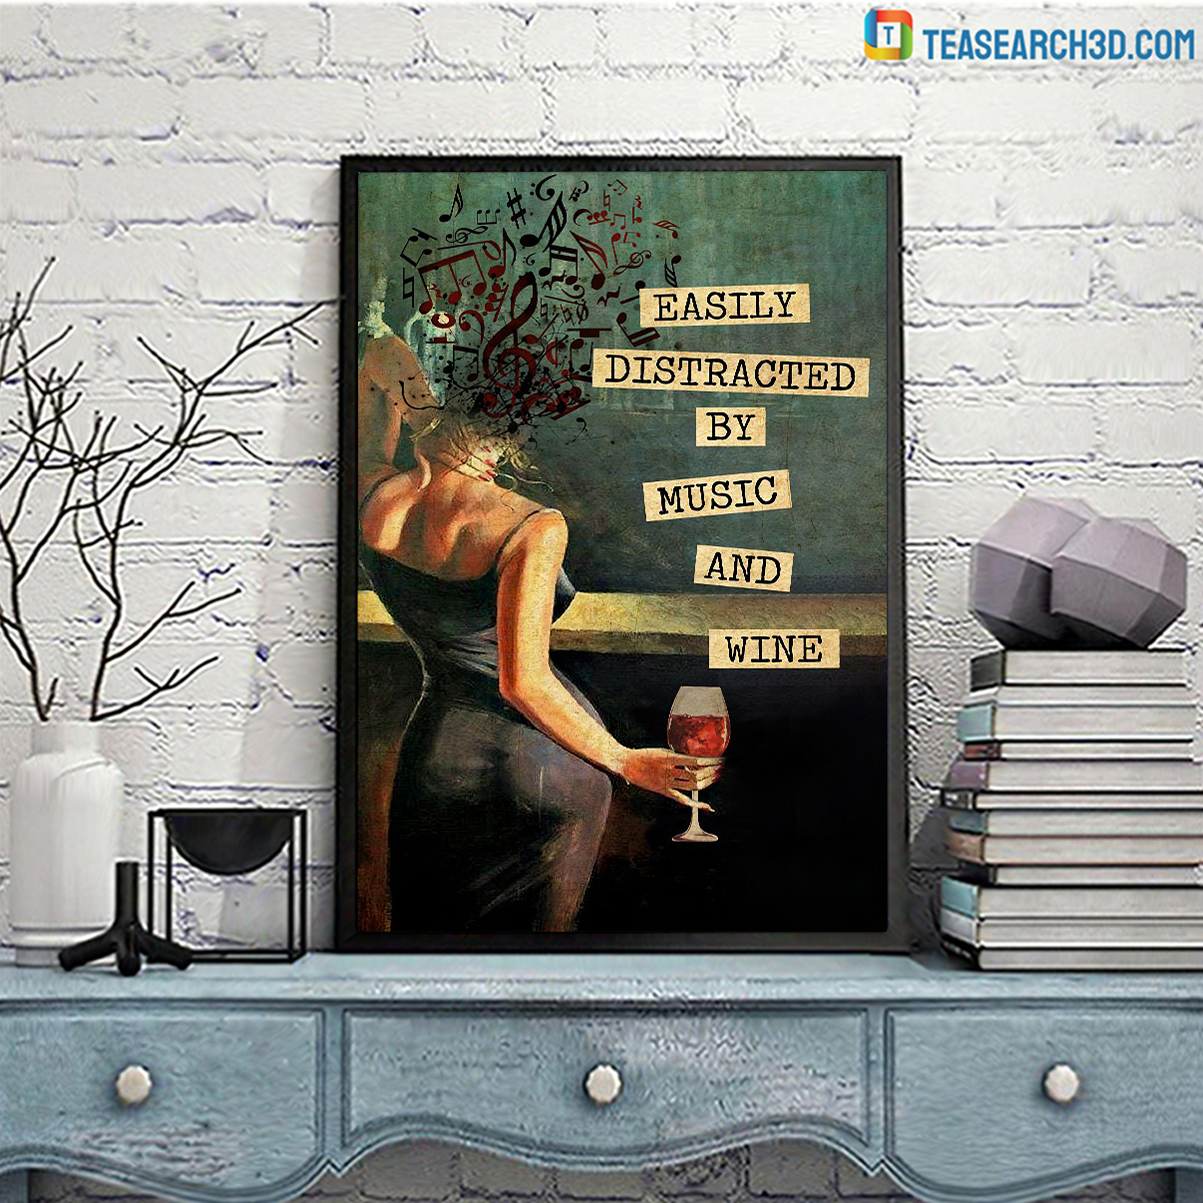 Easily distracted by music and wine vintage text poster A3